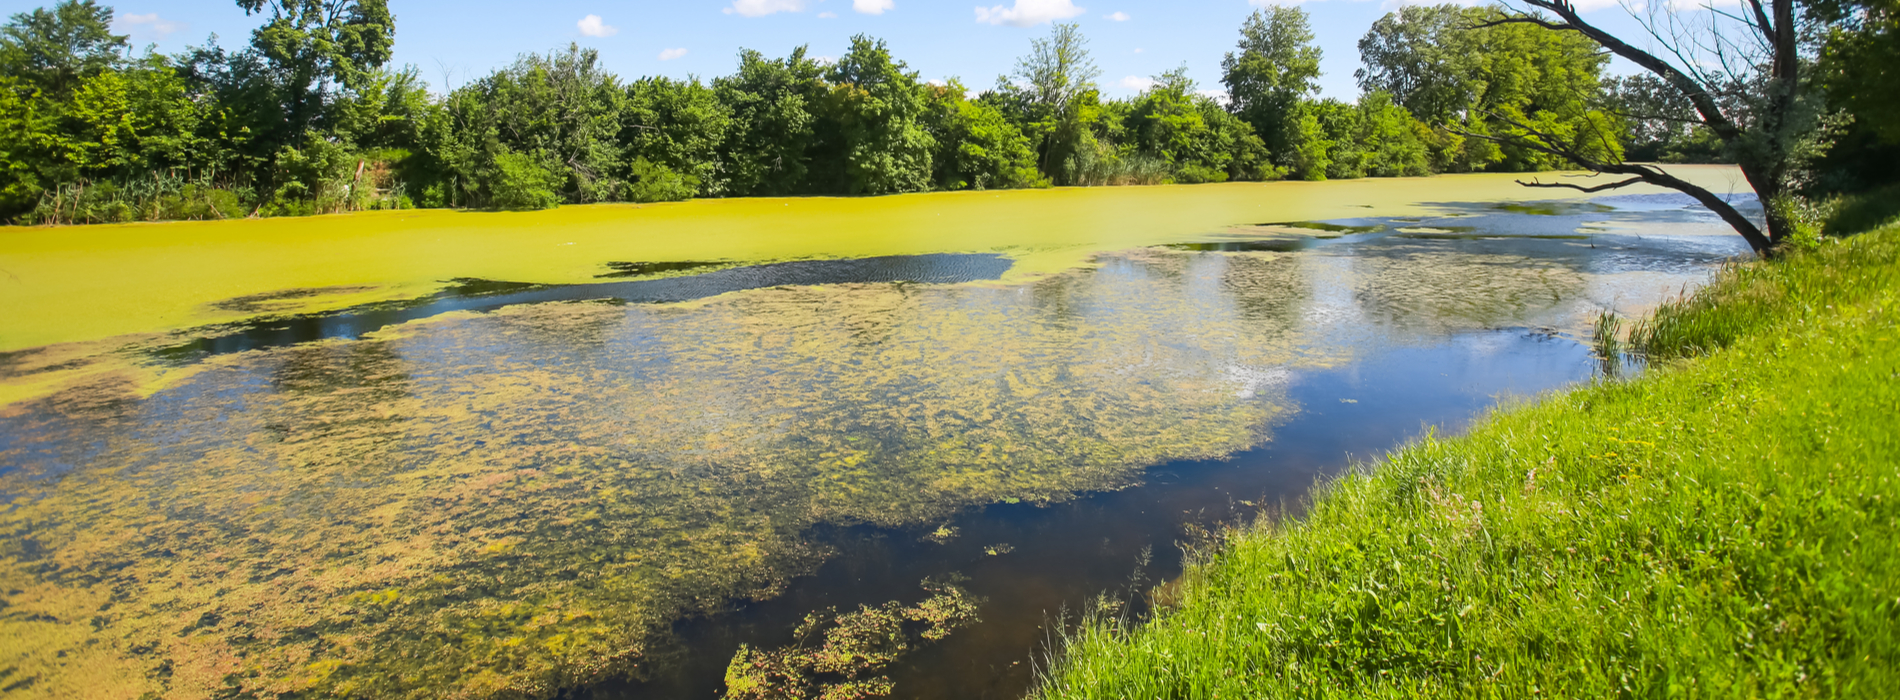 Spotting and Avoiding Harmful Algal Blooms